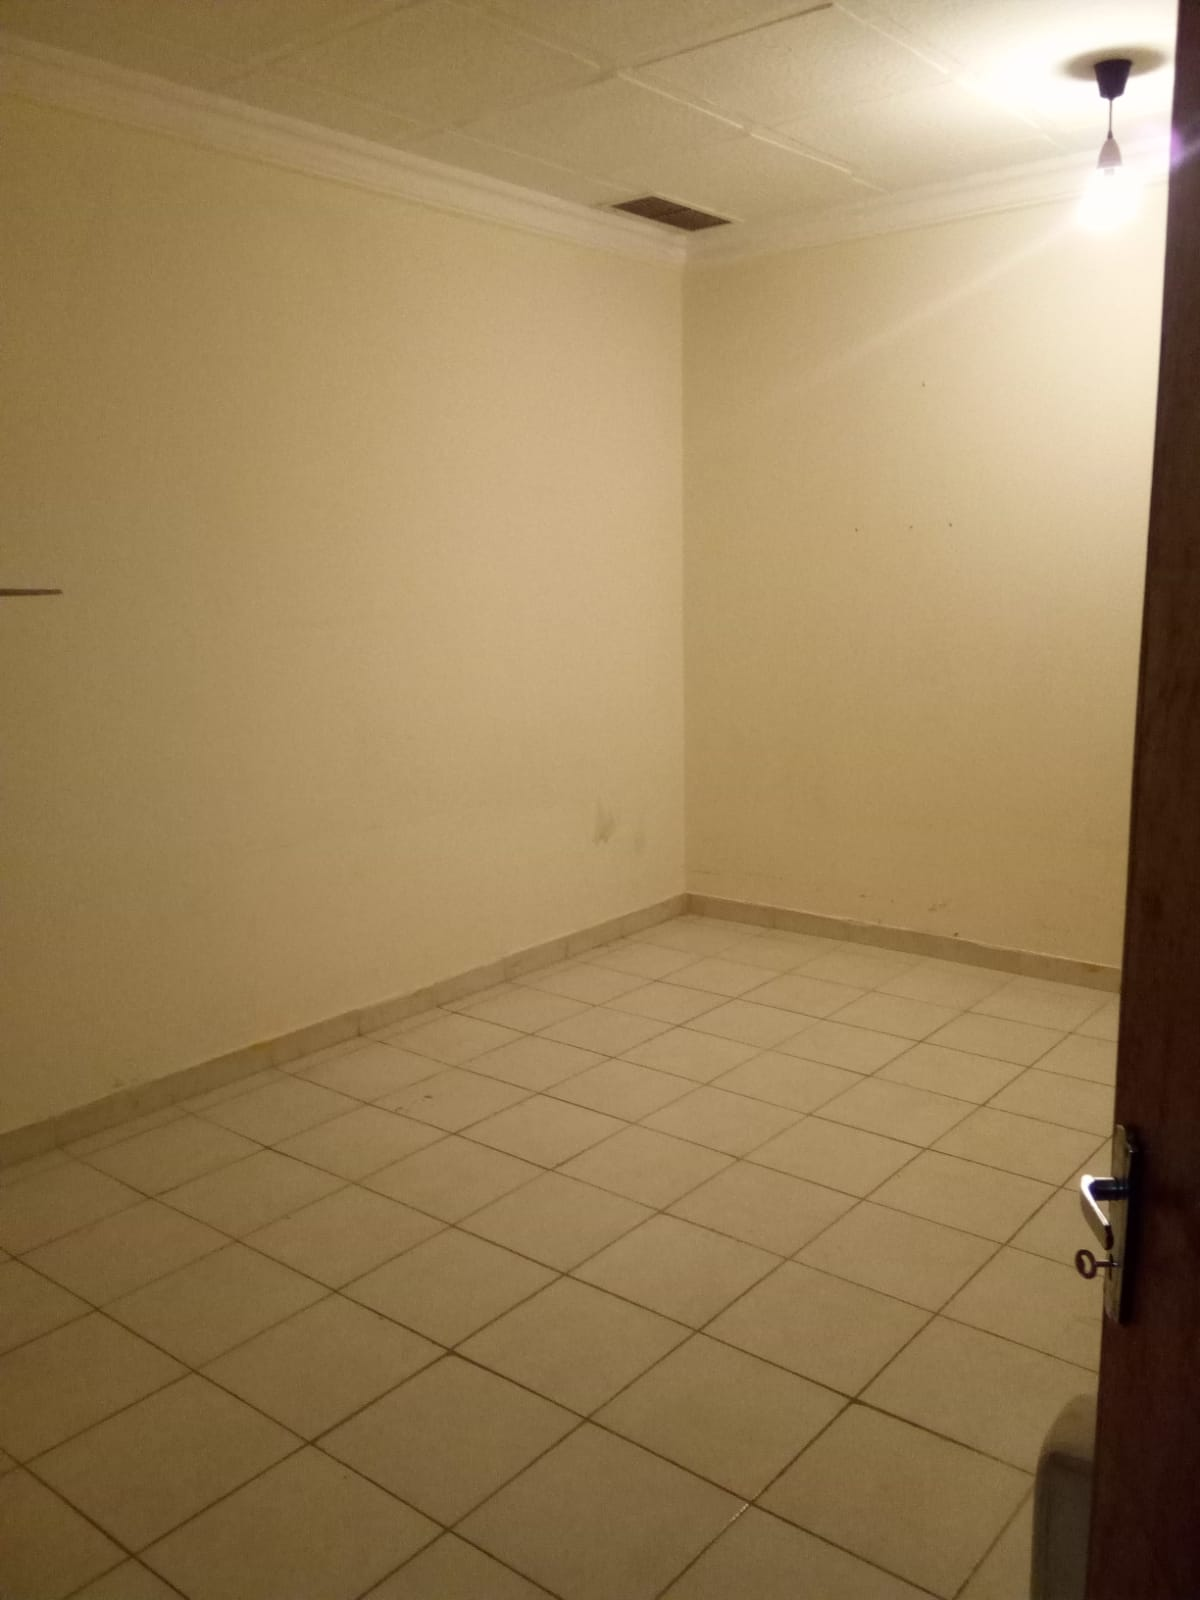 Room for rent in khaitan